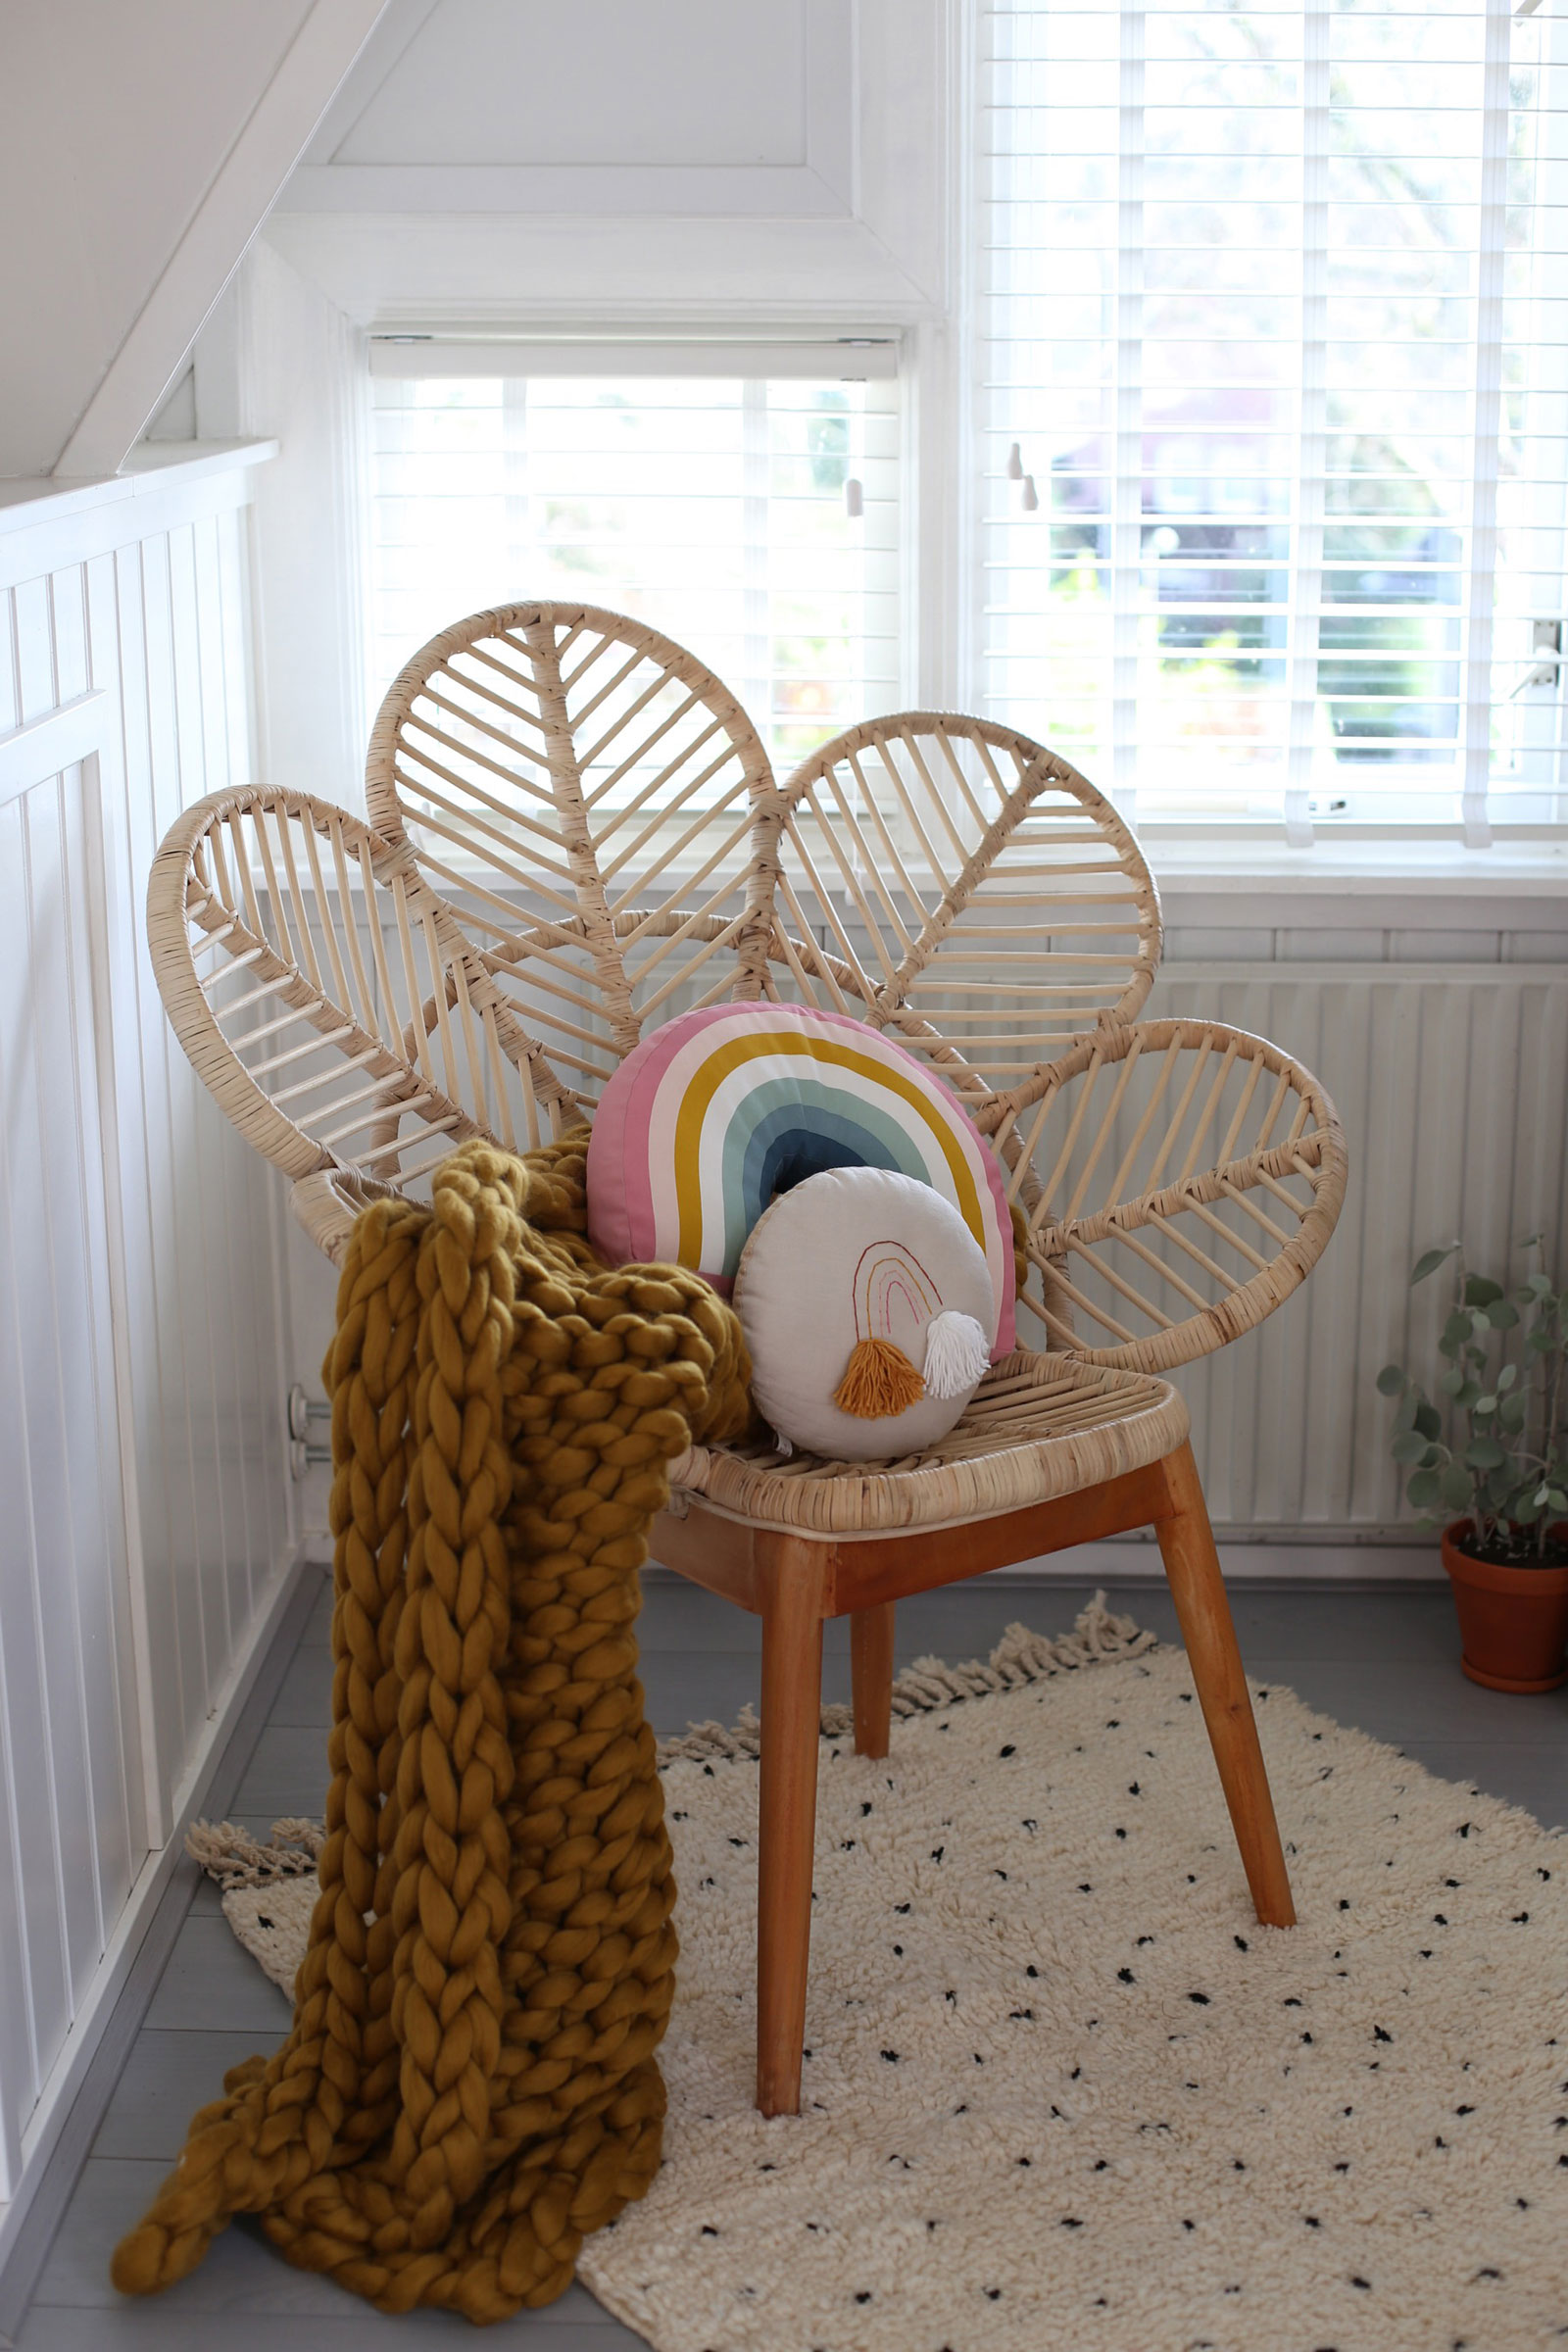 70's style rattan chair